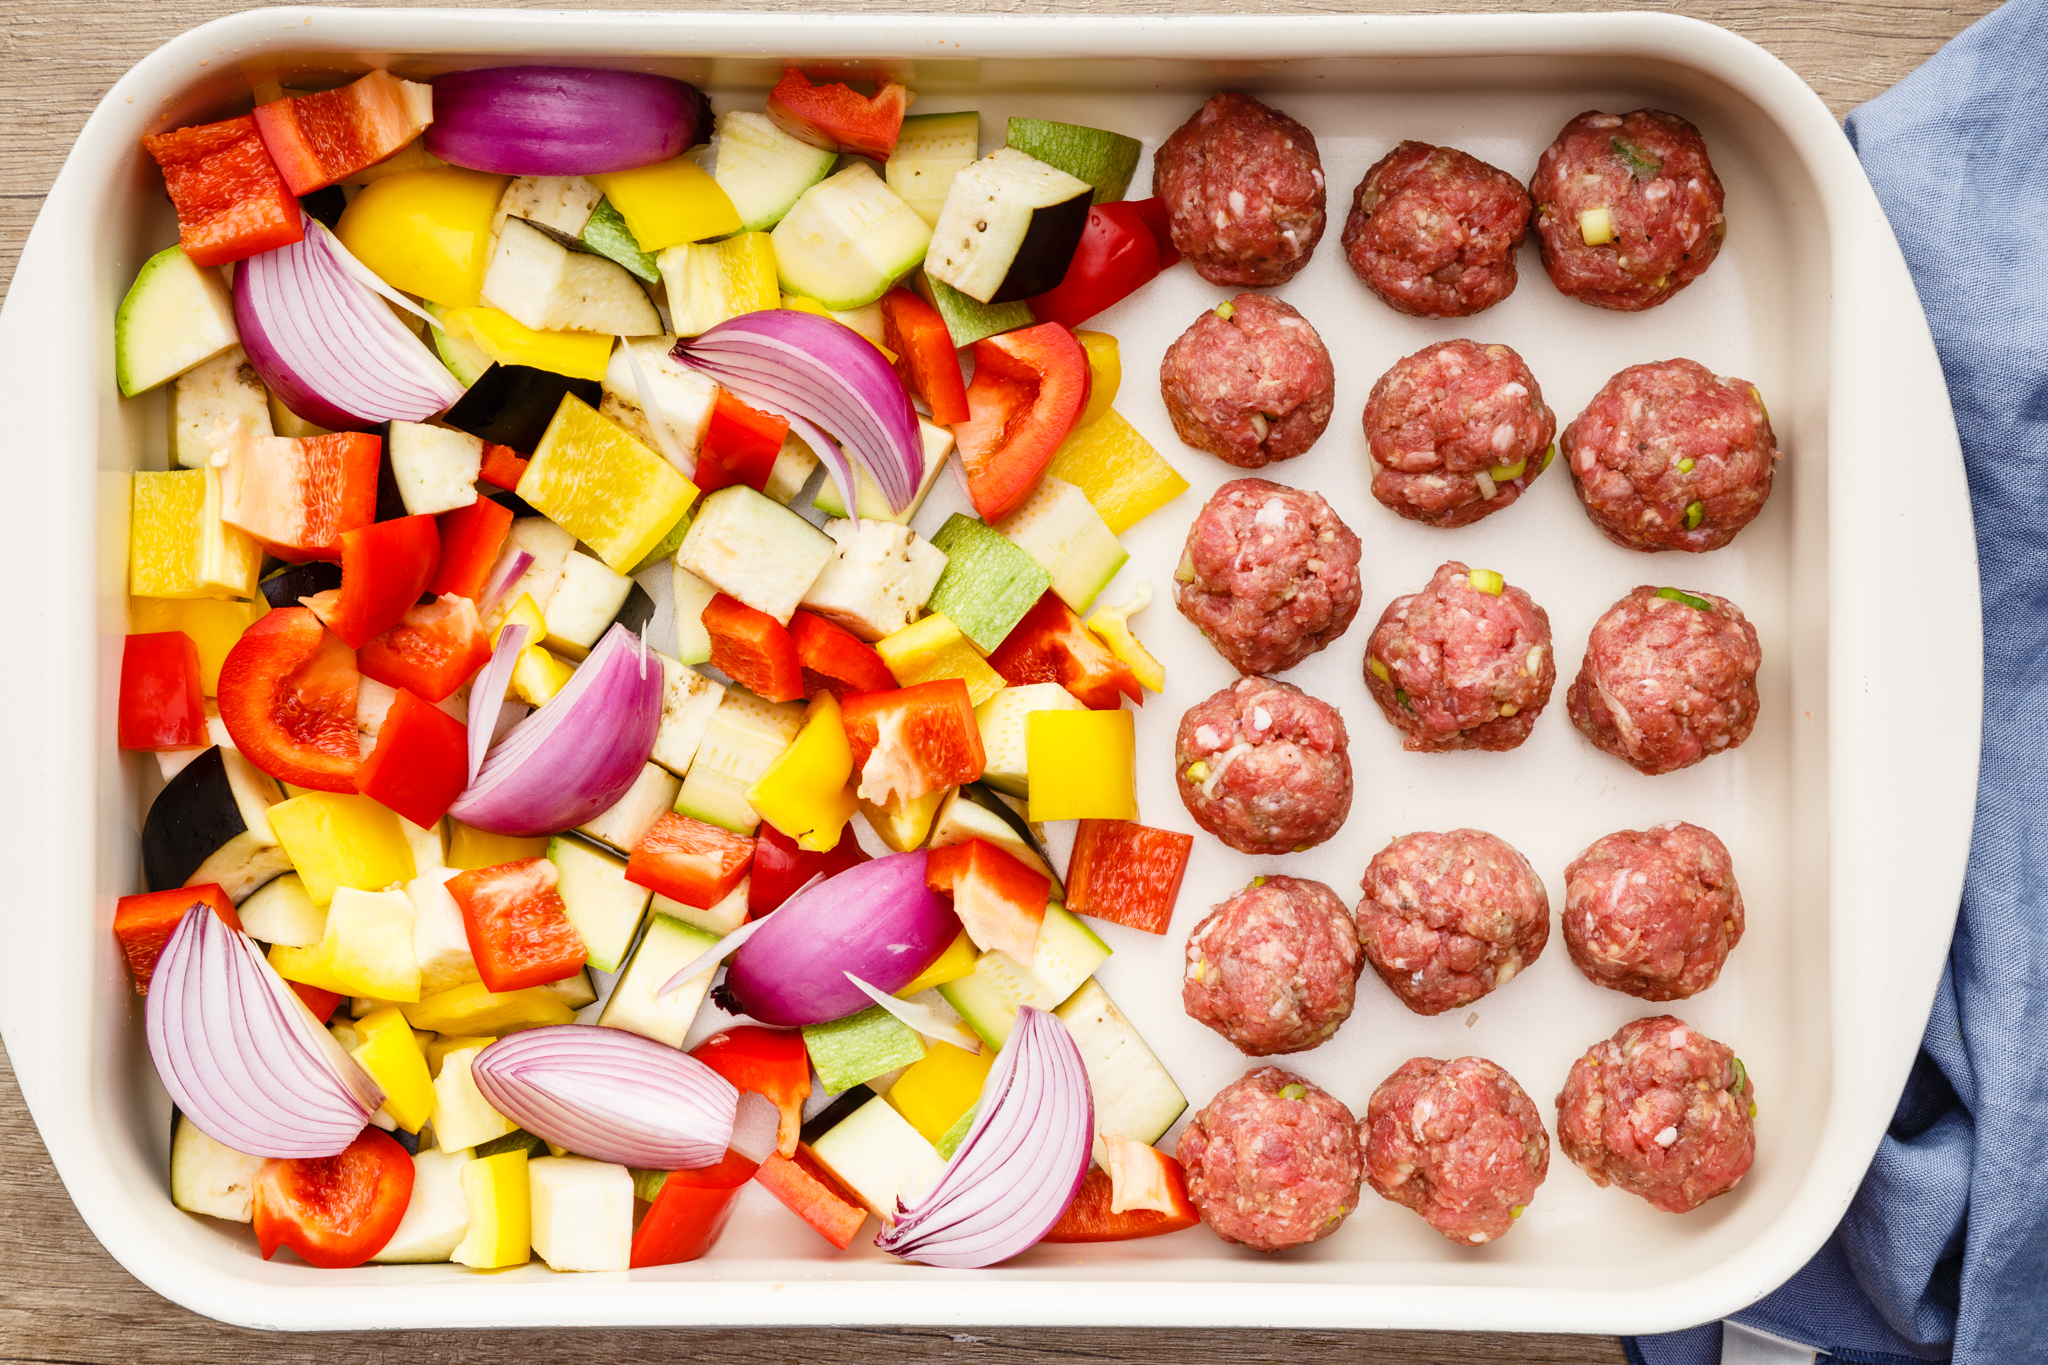 3a-cooking-meatballs-with-veggies